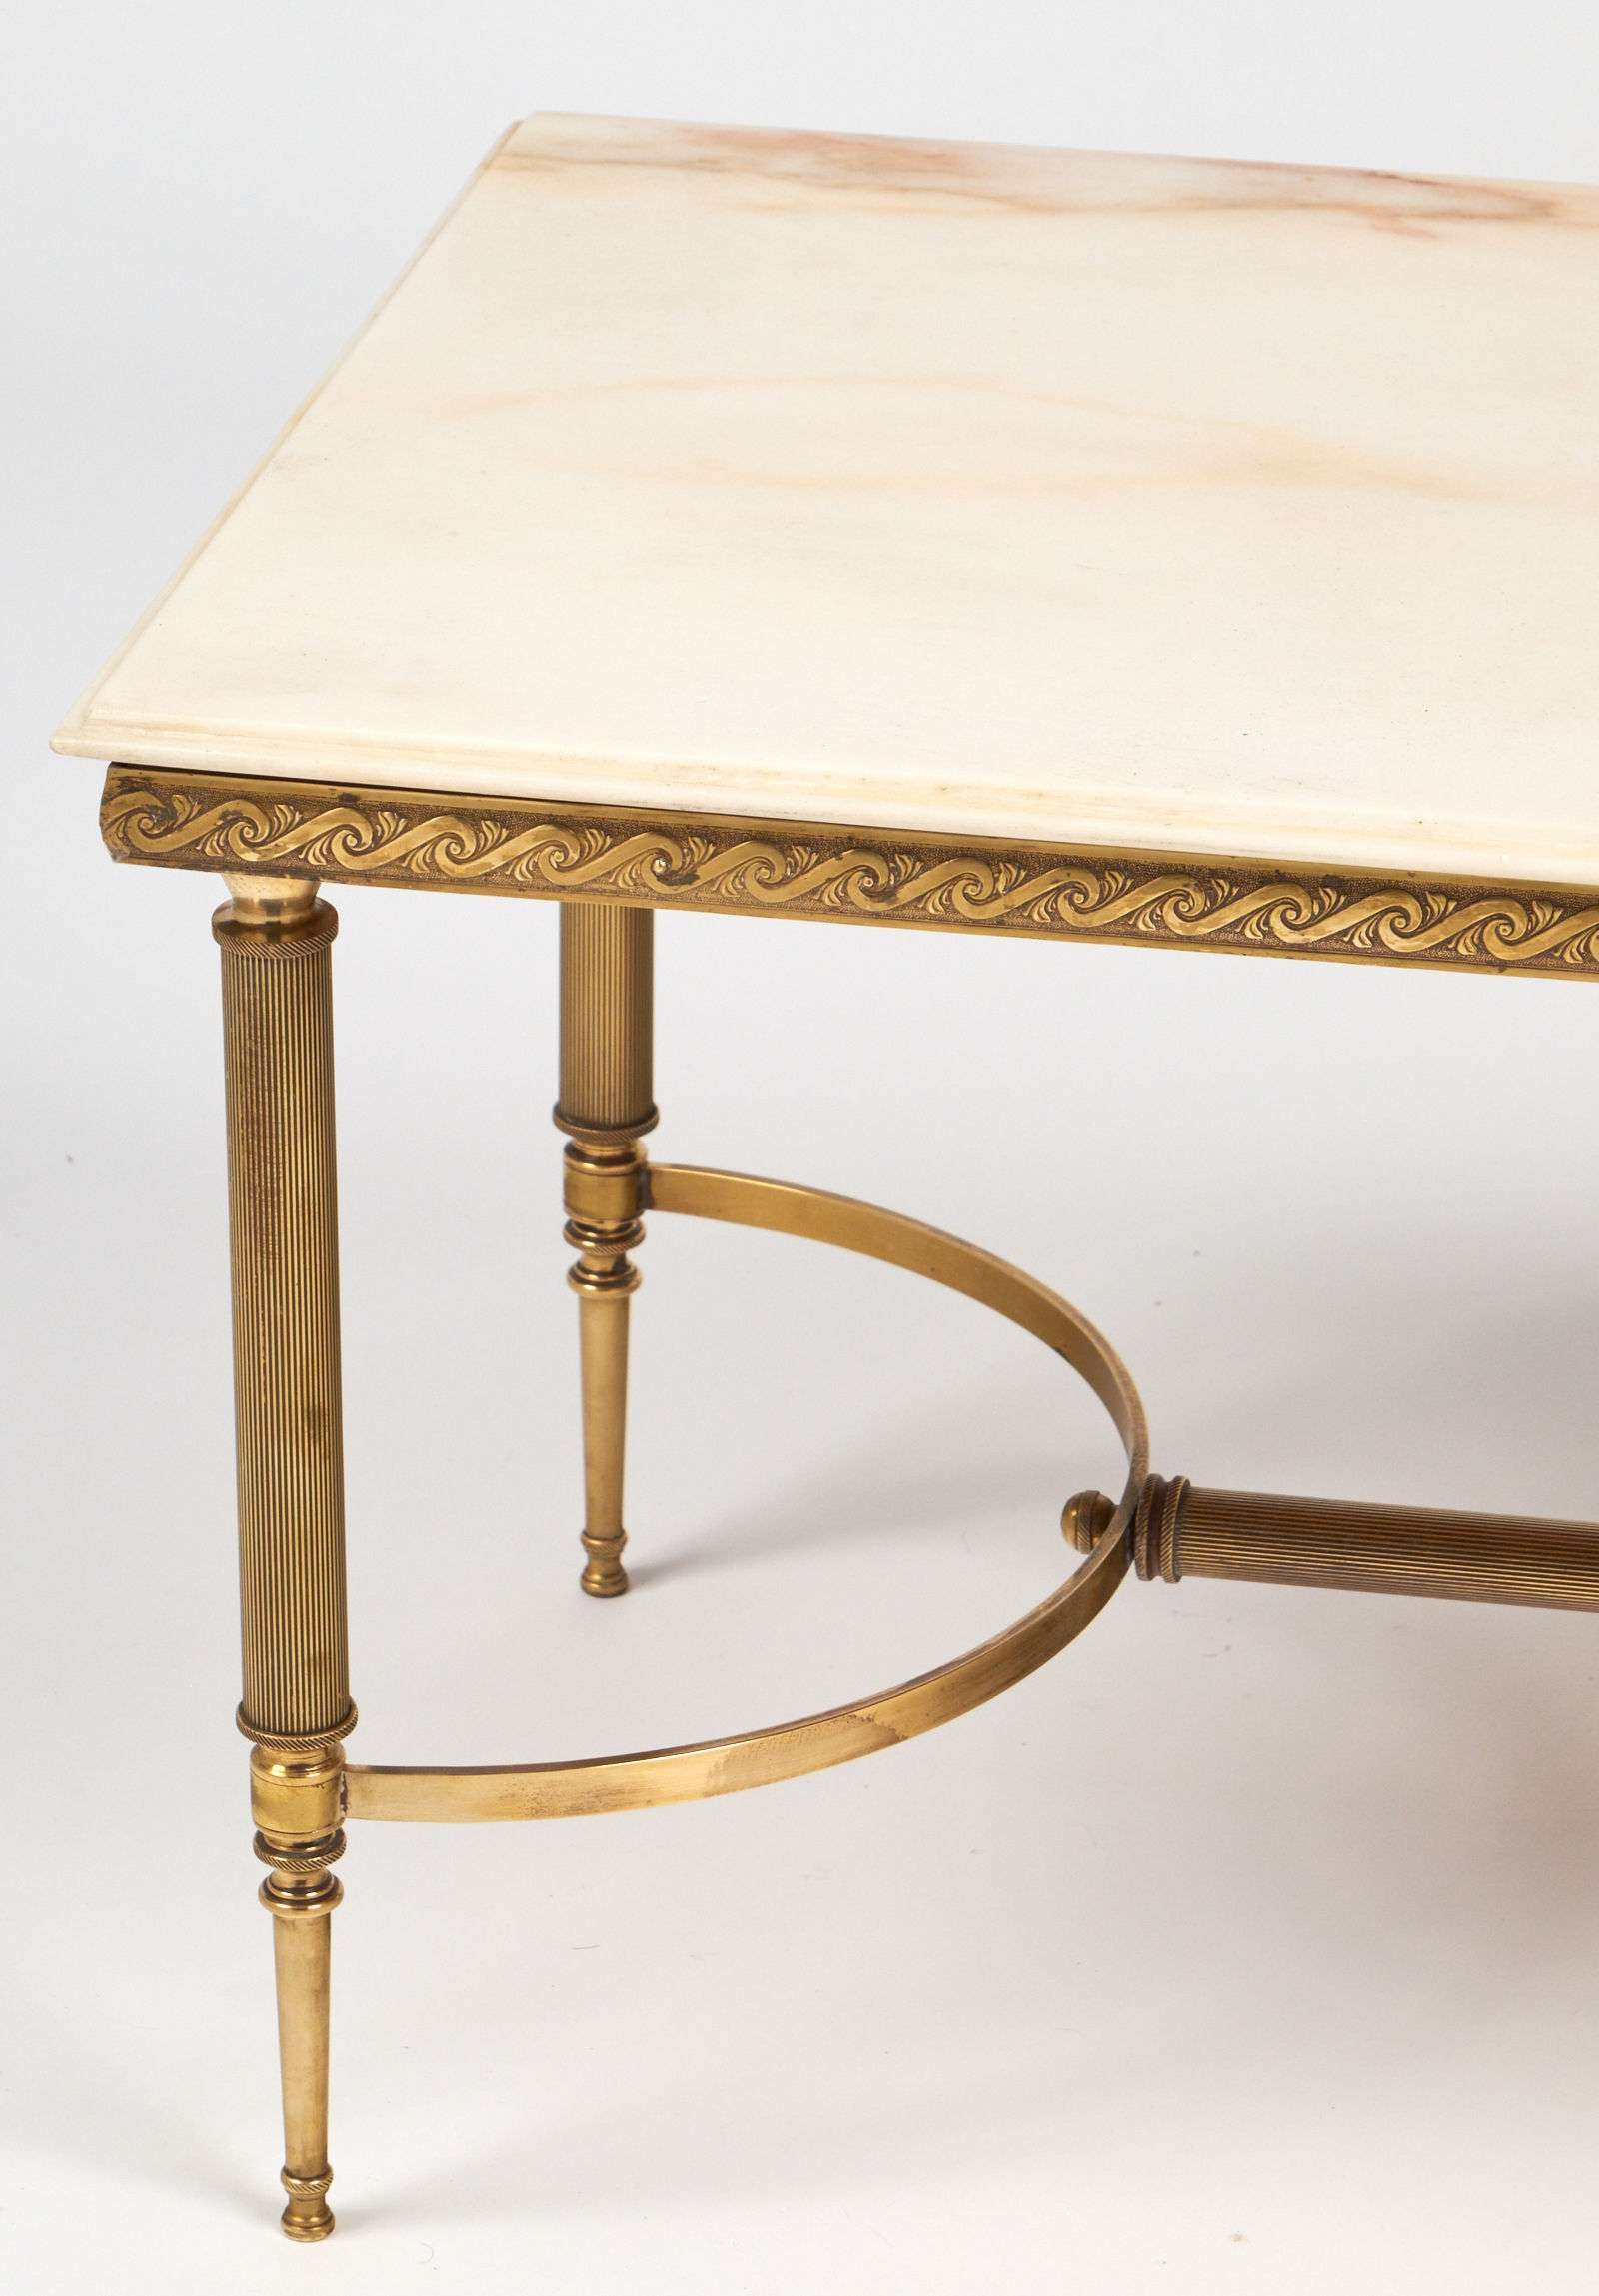 Coffee Tables : Exquisite French Modern Brass Smoked Glass Coffee Pertaining To Most Recent Retro Smoked Glass Coffee Tables (View 18 of 20)